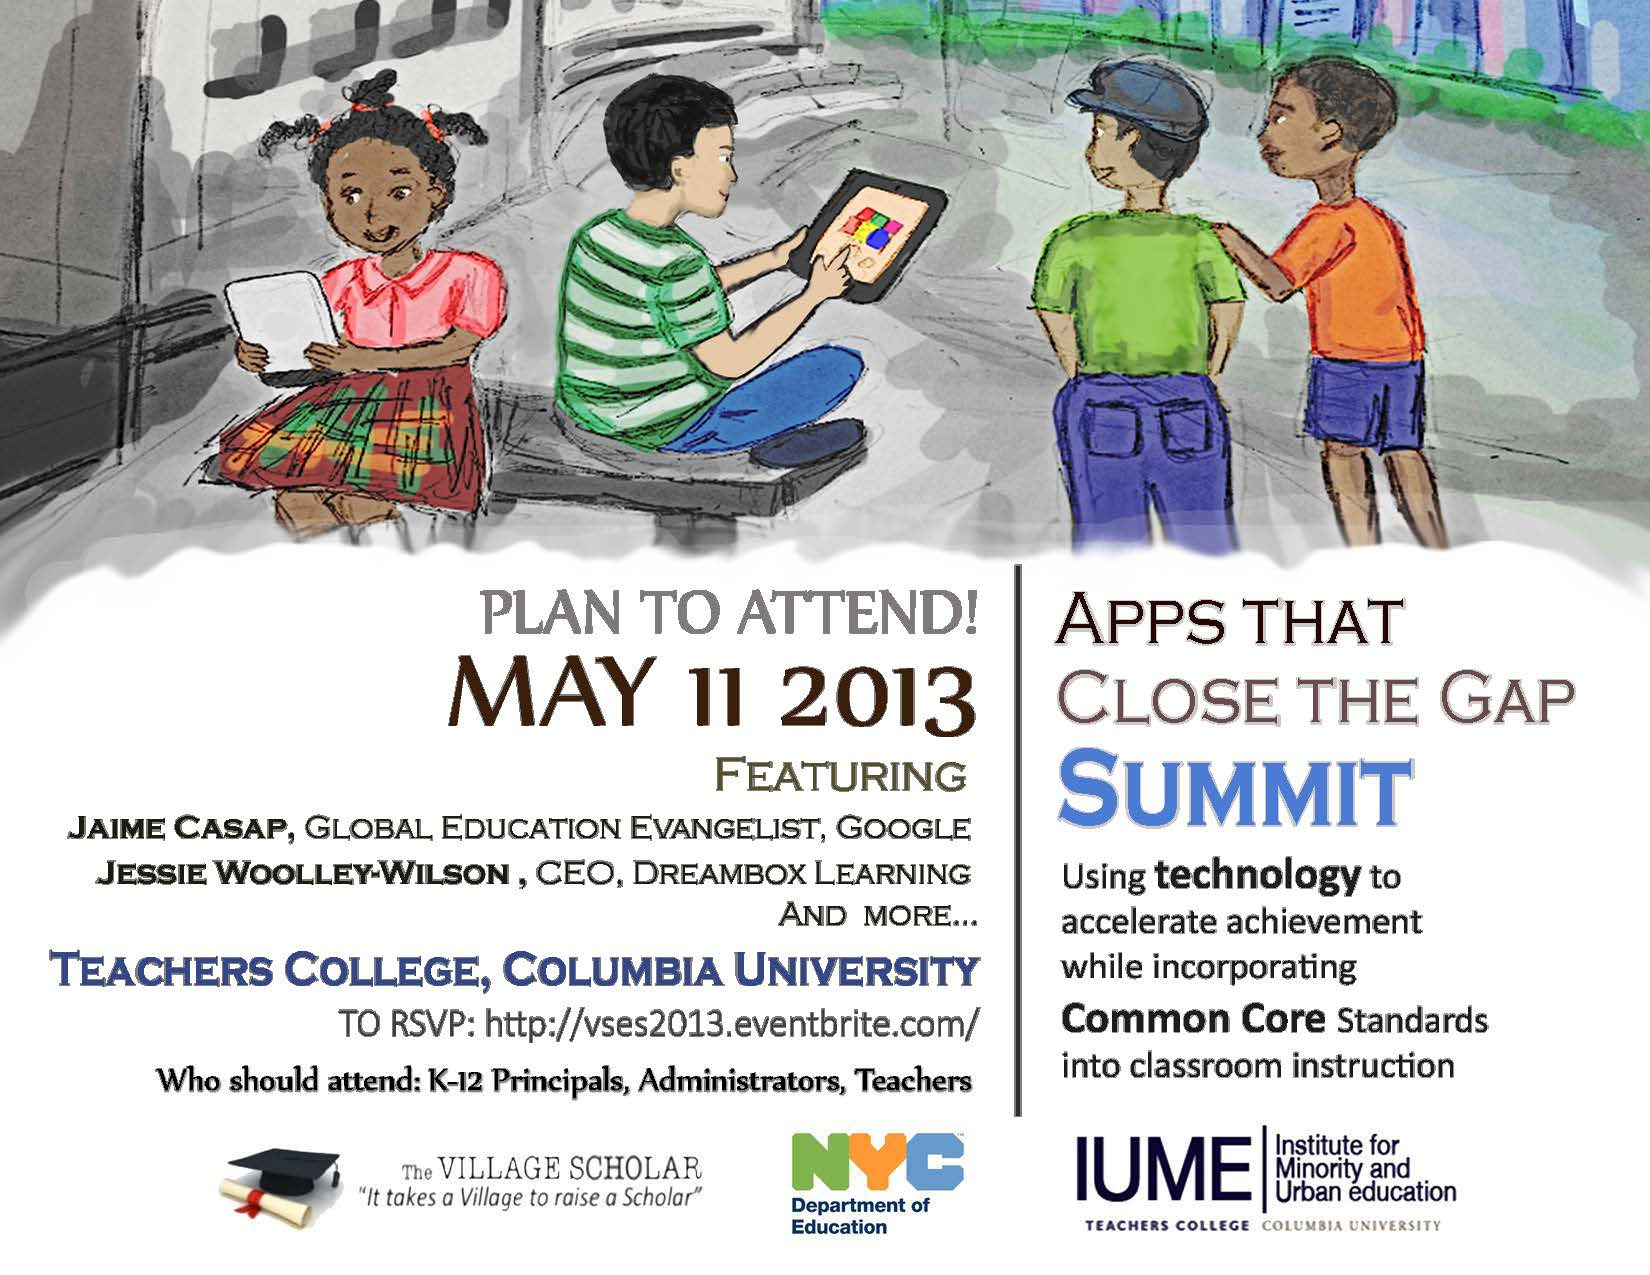 Apps that Close the Gap Summit